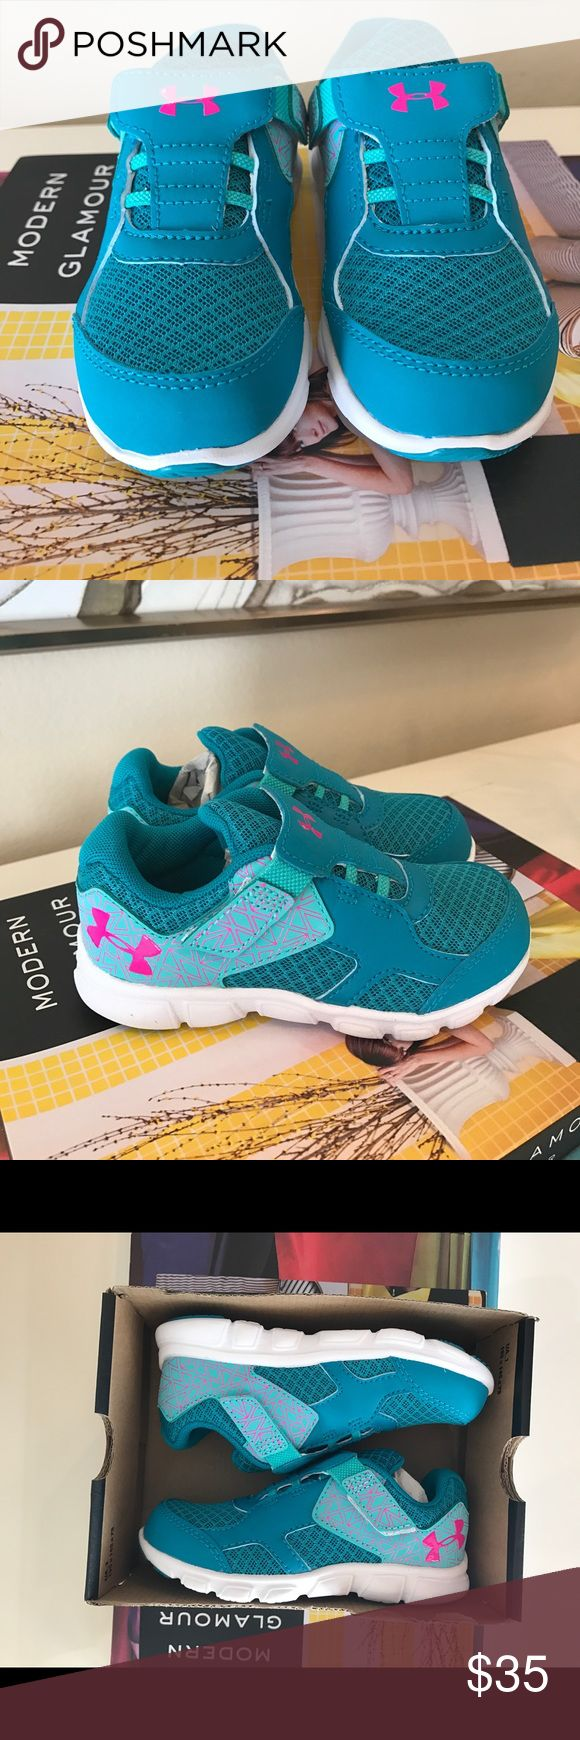 NWT GIRLS UNDER ARMOUR TENNIS SHOES SNEAKERS NWT GIRLS UNDER ARMOUR TENNIS SHOES SNEAKERS NEW IN BOX SIZE 9 US VELCRO CLOSE BRAND NEW IN BOX TEAL AQUA PINK WHITE KIDS SHOES Under Armour Shoes Sneakers